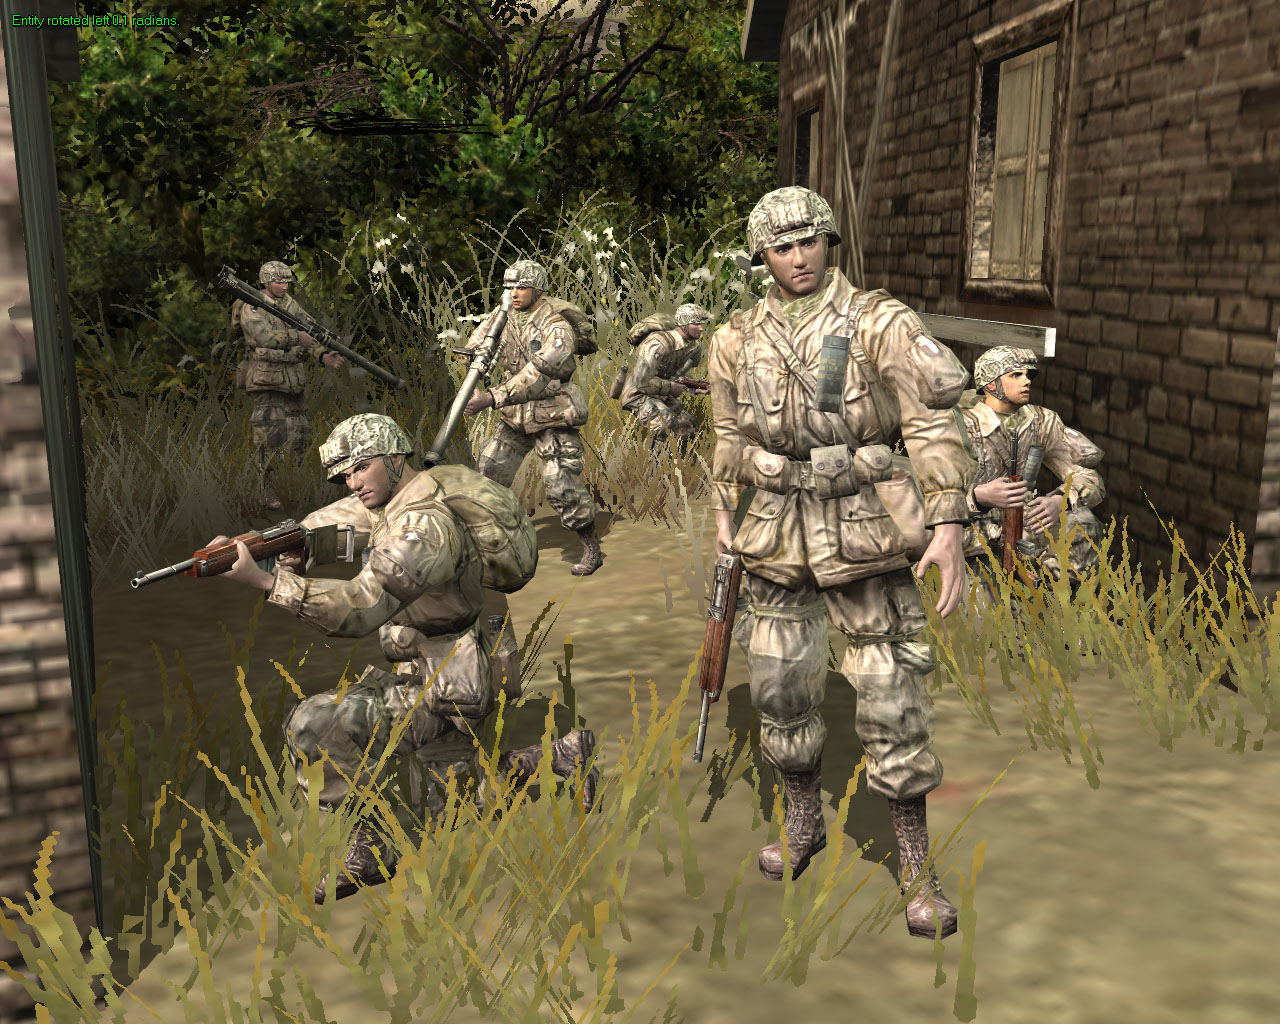 Free Download Airborne Squad Company Of Heroes Wiki Fandom Powered By Wikia 1280x1024 For Your Desktop Mobile Tablet Explore 32 Company Of Heroes 2 Western Front Wallpaper Tanks Company